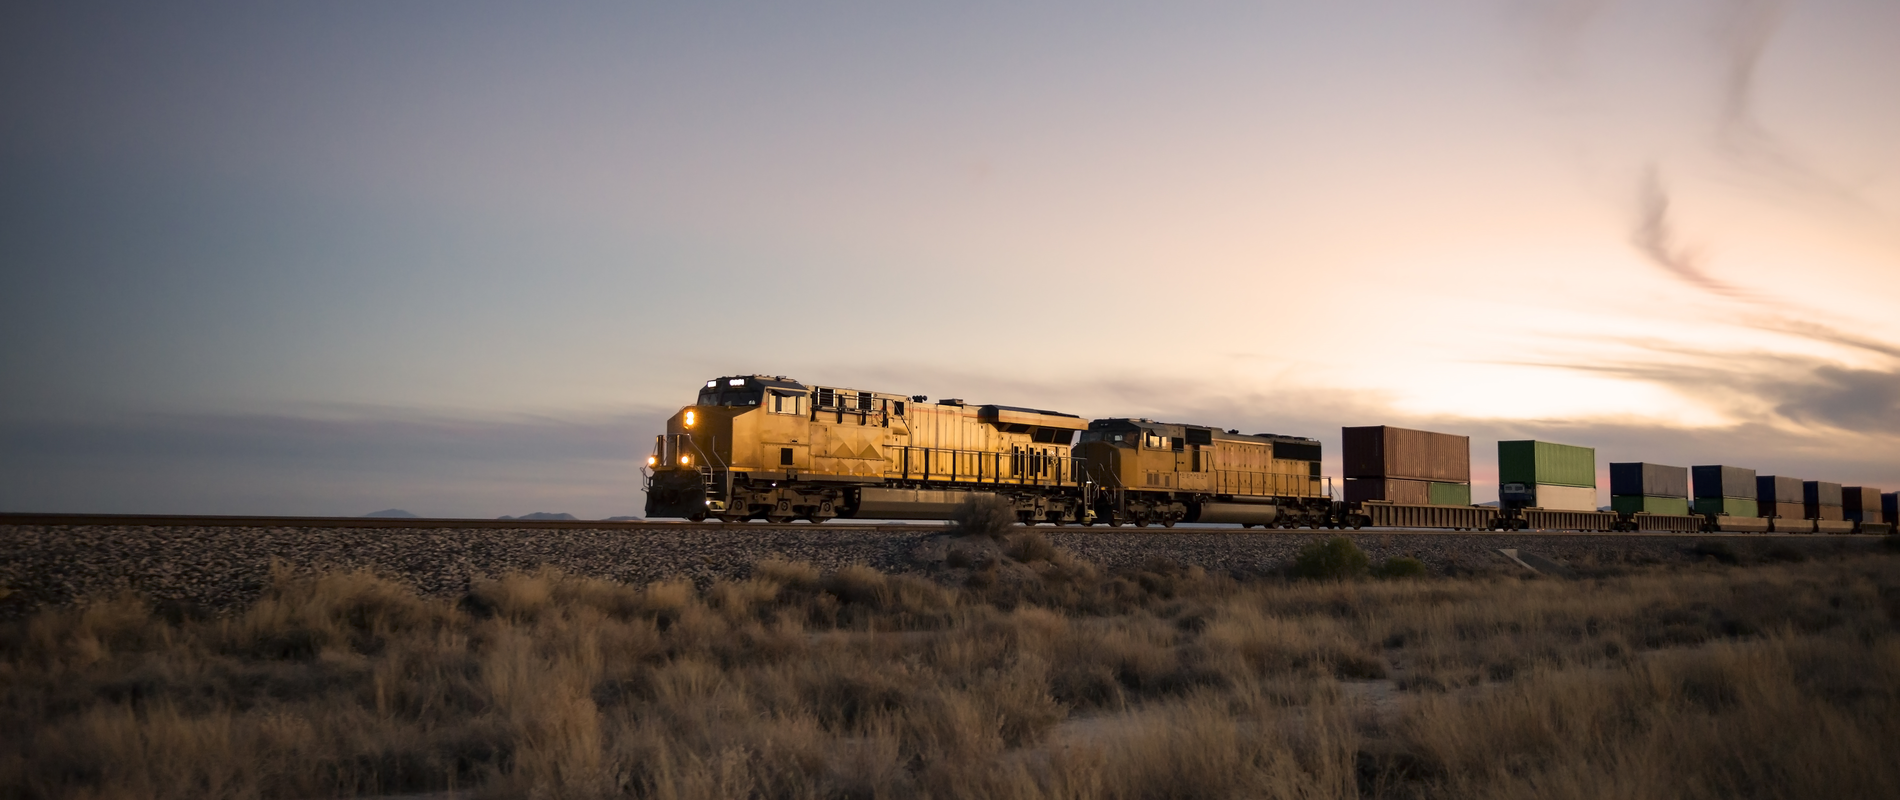 Locomotive rolling through plains at sunset